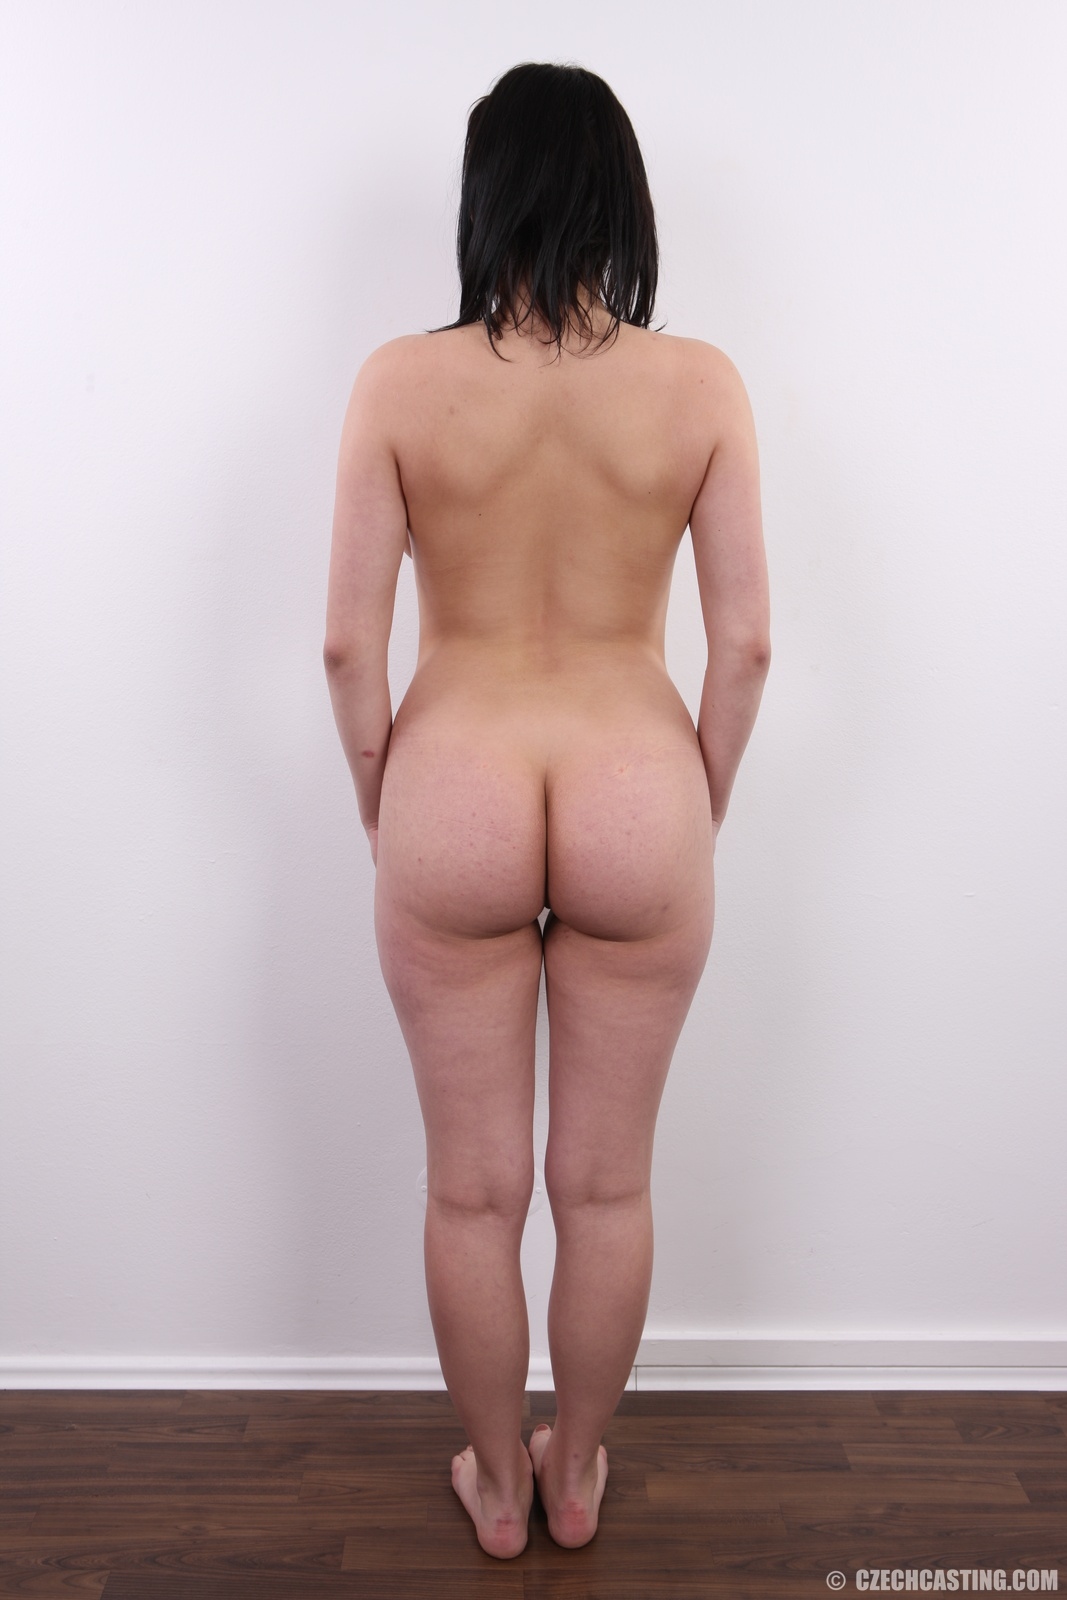 Nude woman picture from behind